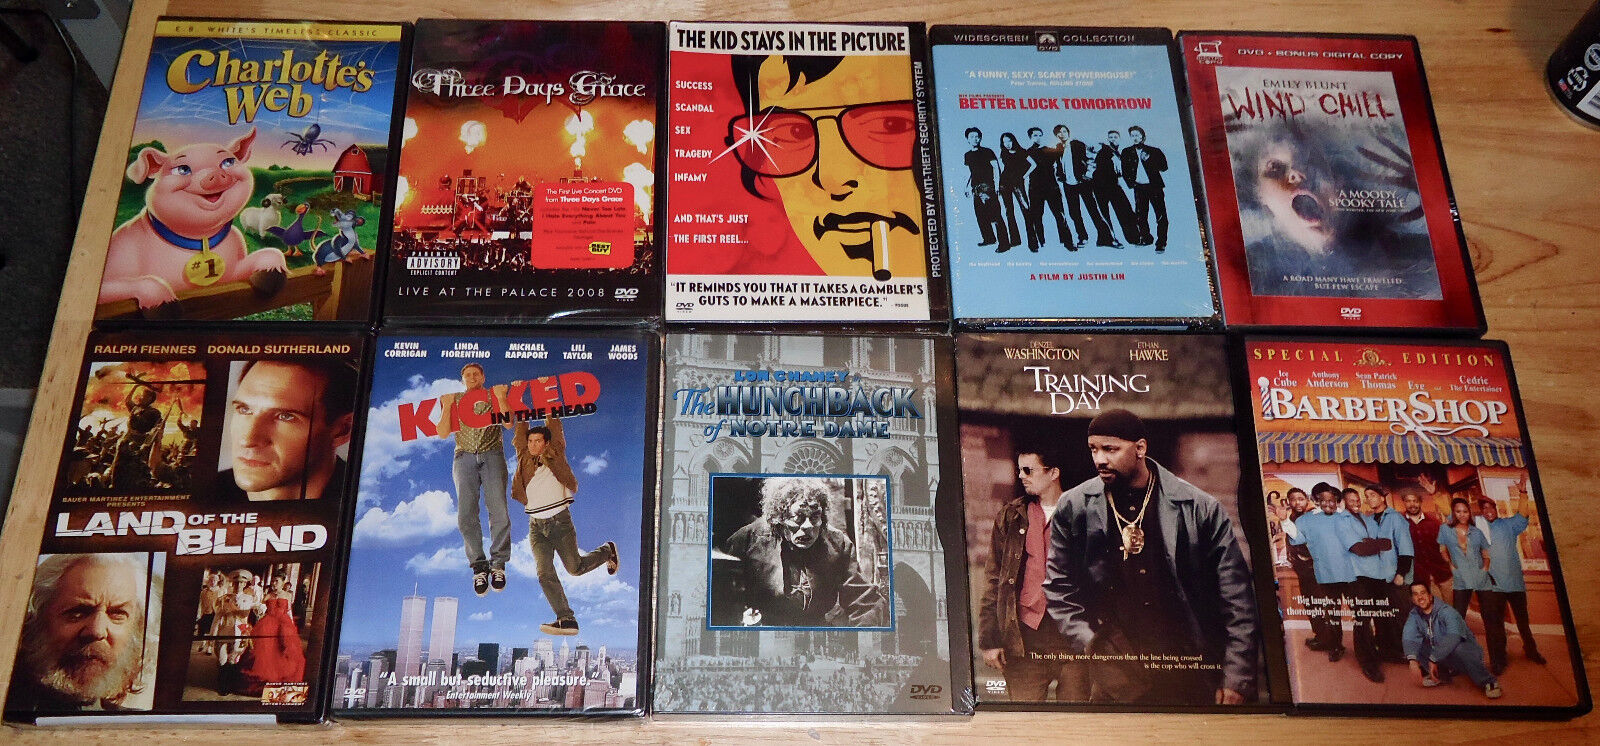 DVD Lot of 10 Wind Chill/Training Day/Barber Shop/Land of the Blind/Charlotte's